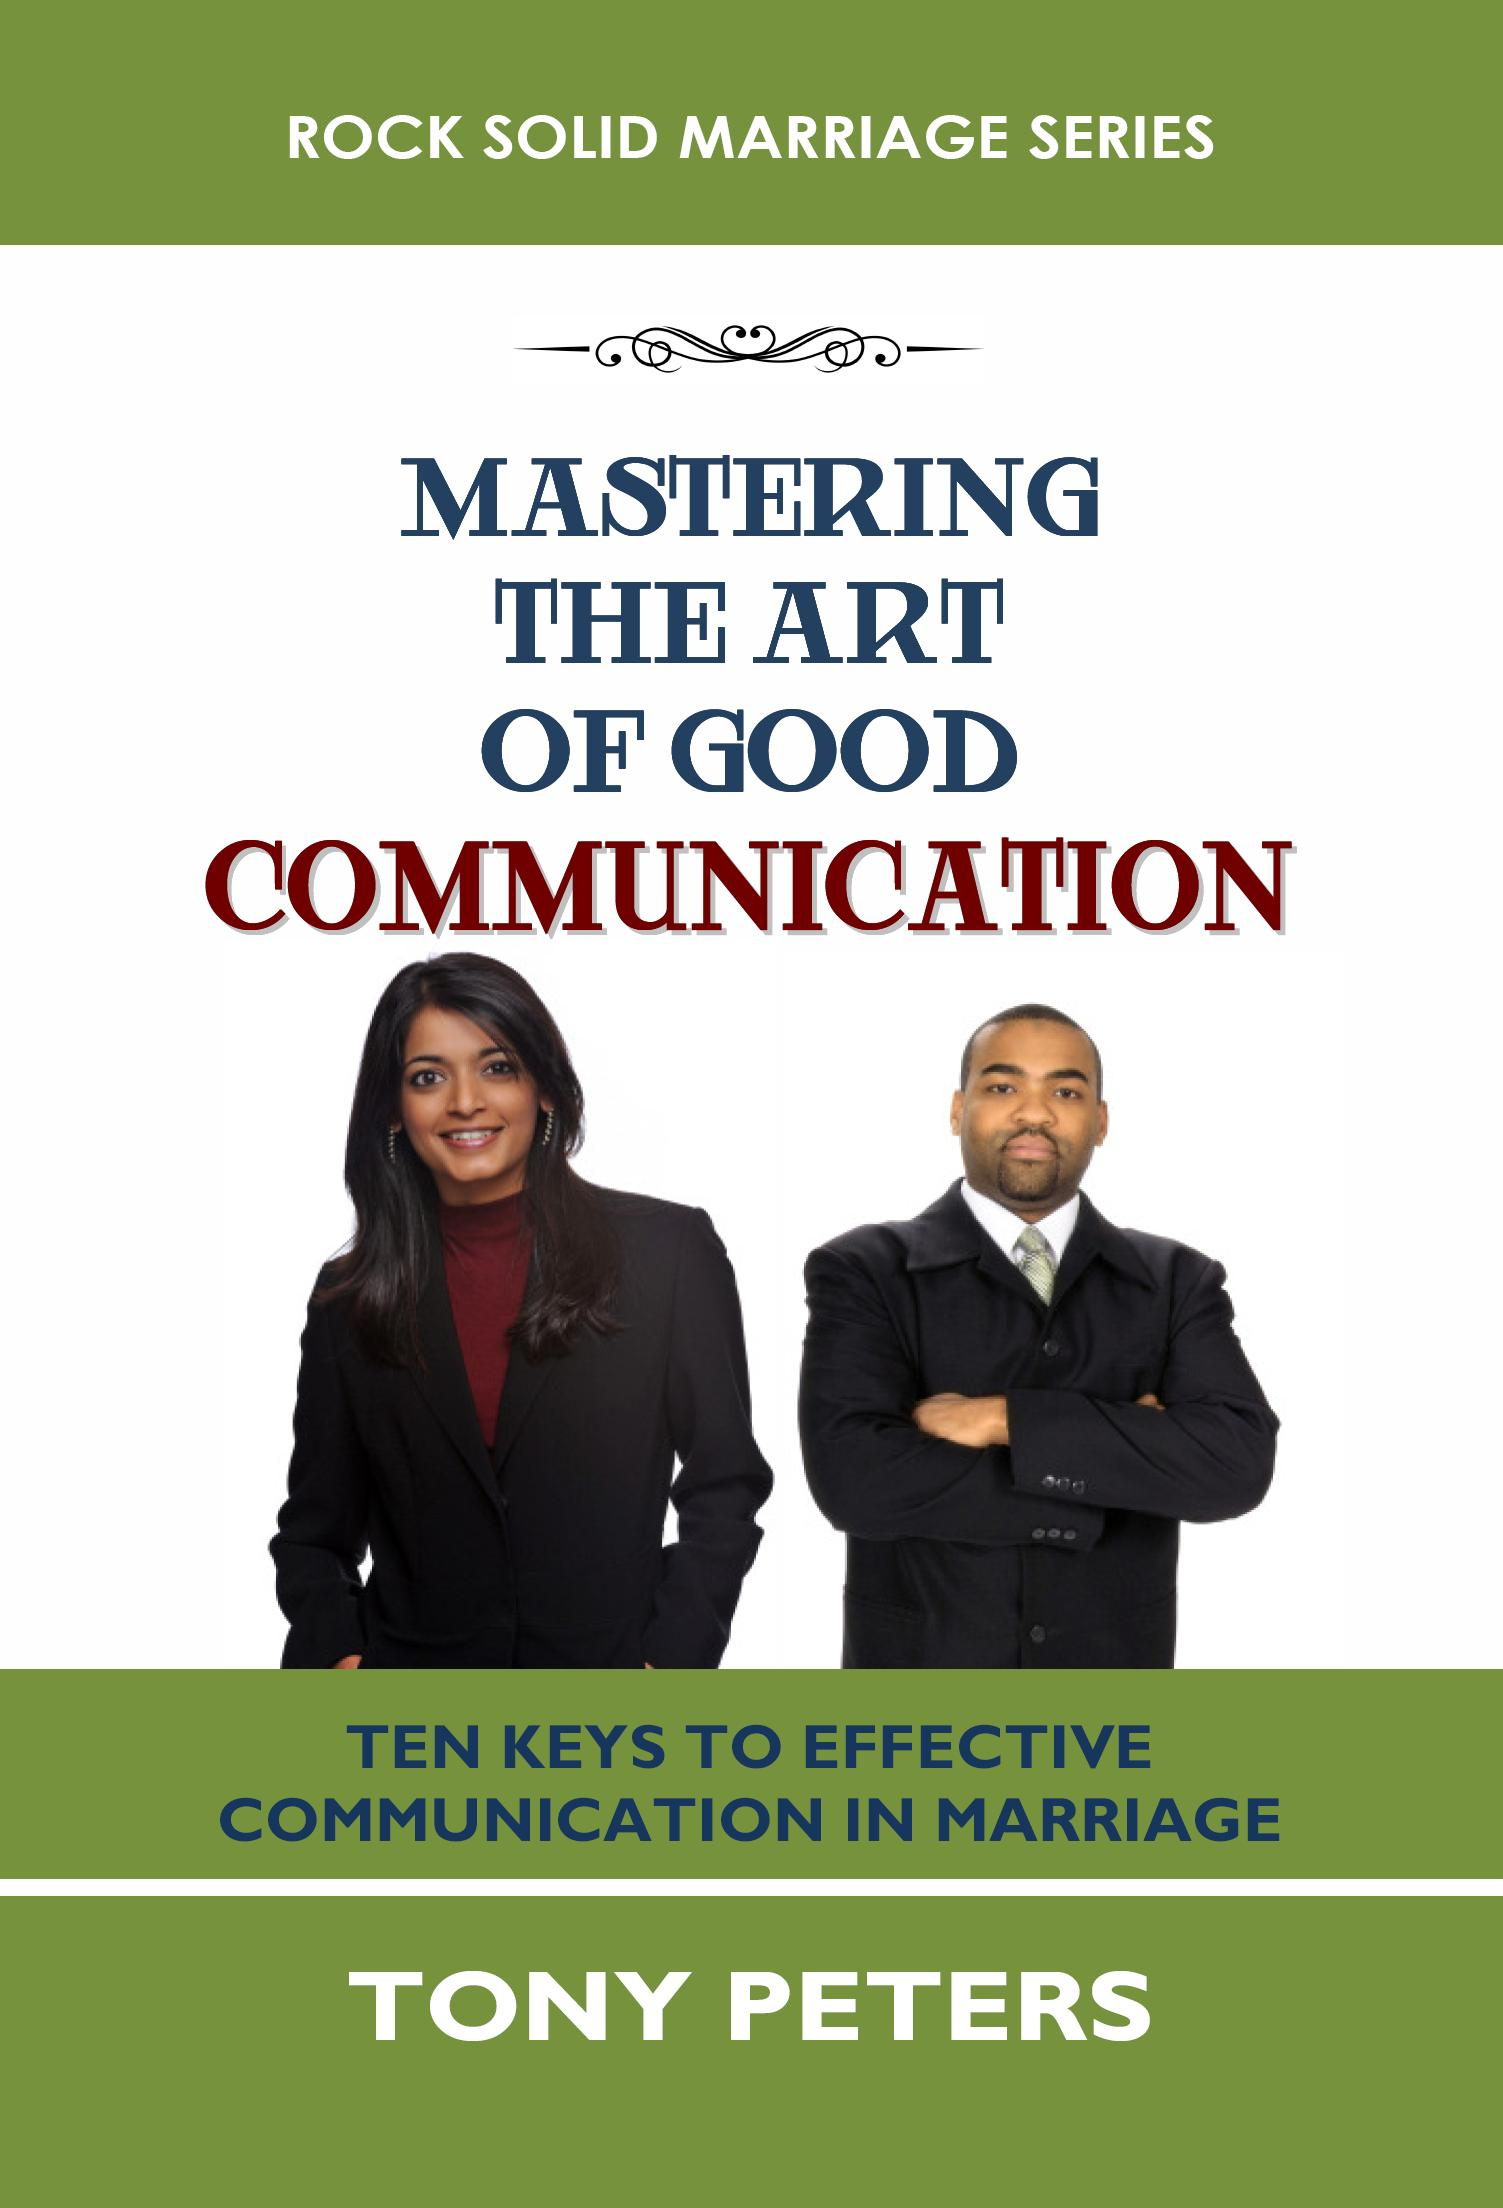 MASTERING THE ART OF GOOD COMMUNICATION